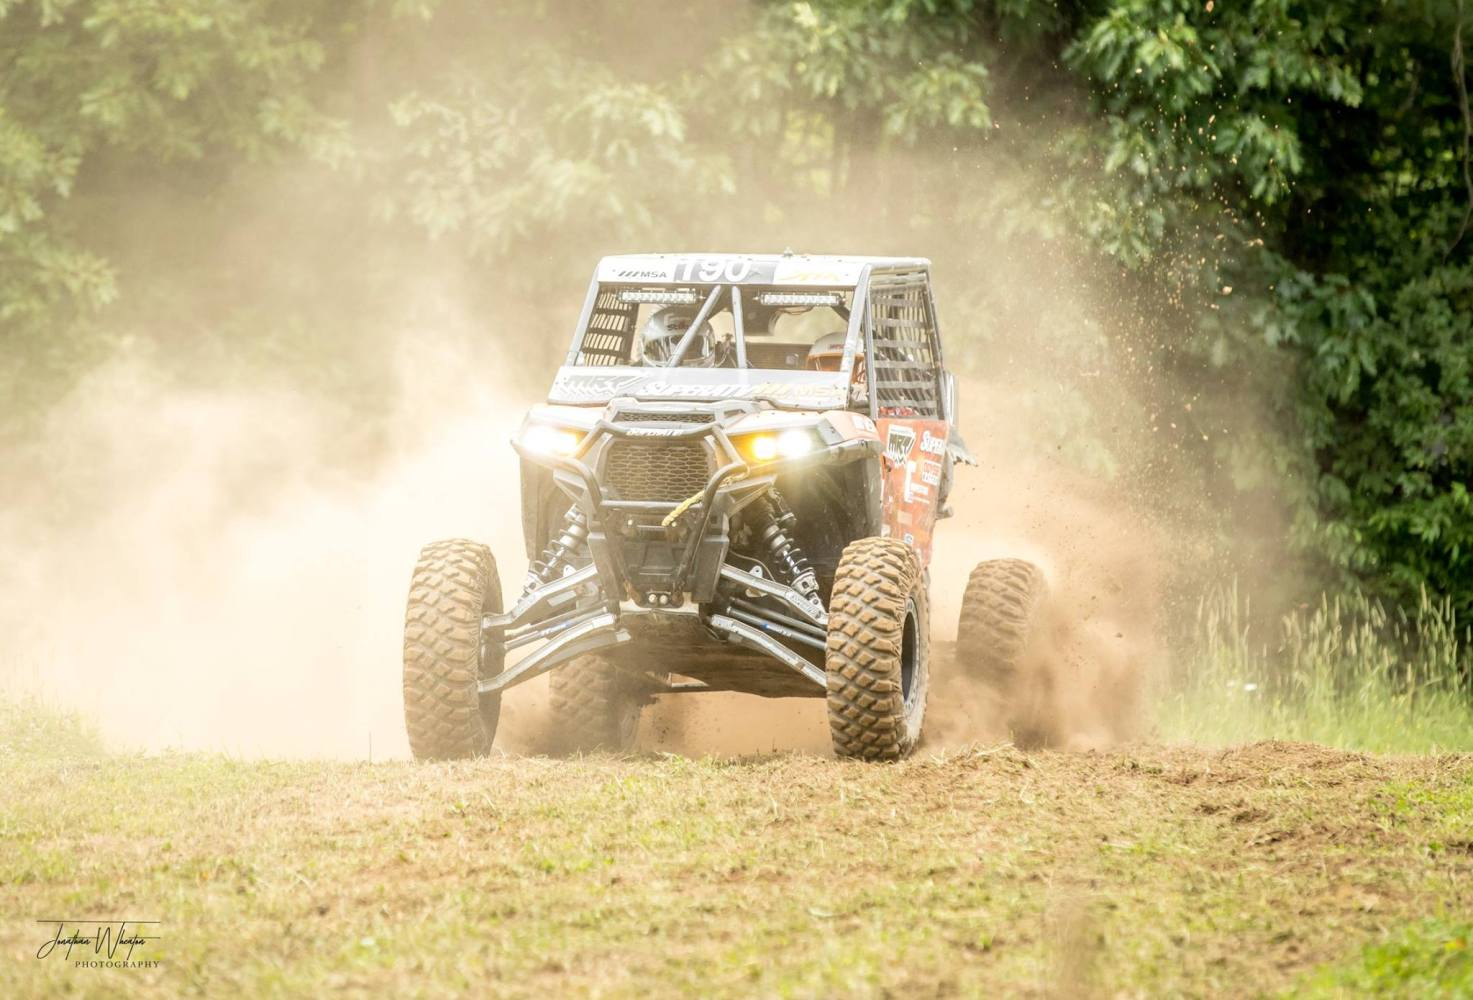 sean-haluch-racing-mrt-utv-race-tires-014